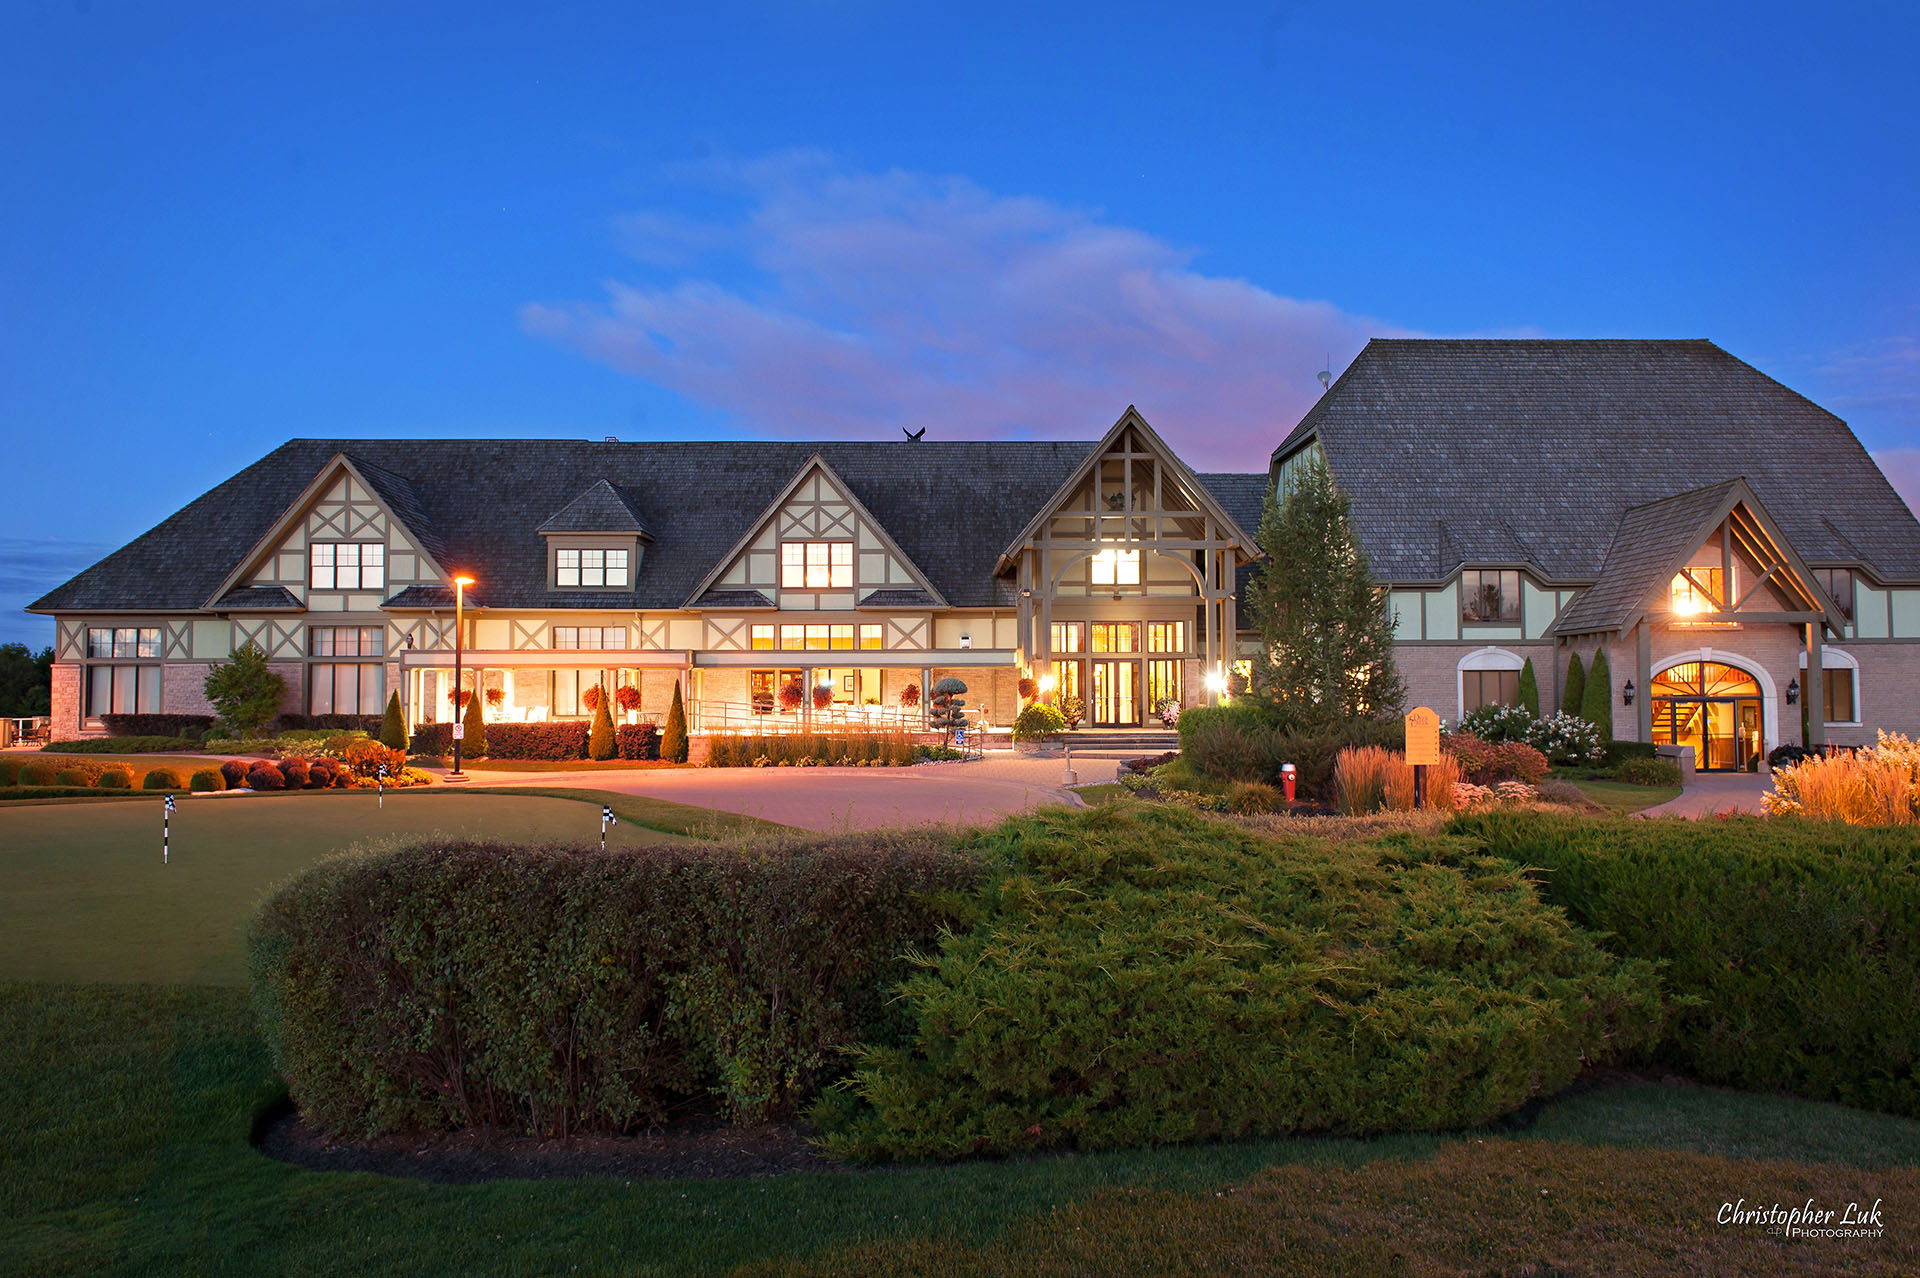 Christopher Luk - Deer Creek Golf Club and Banquet Facility Ajax - Toronto Wedding and Event Photographer - Evening Dusk Sunset Long Exposure Night Time Glow Exterior Front Entrance Small